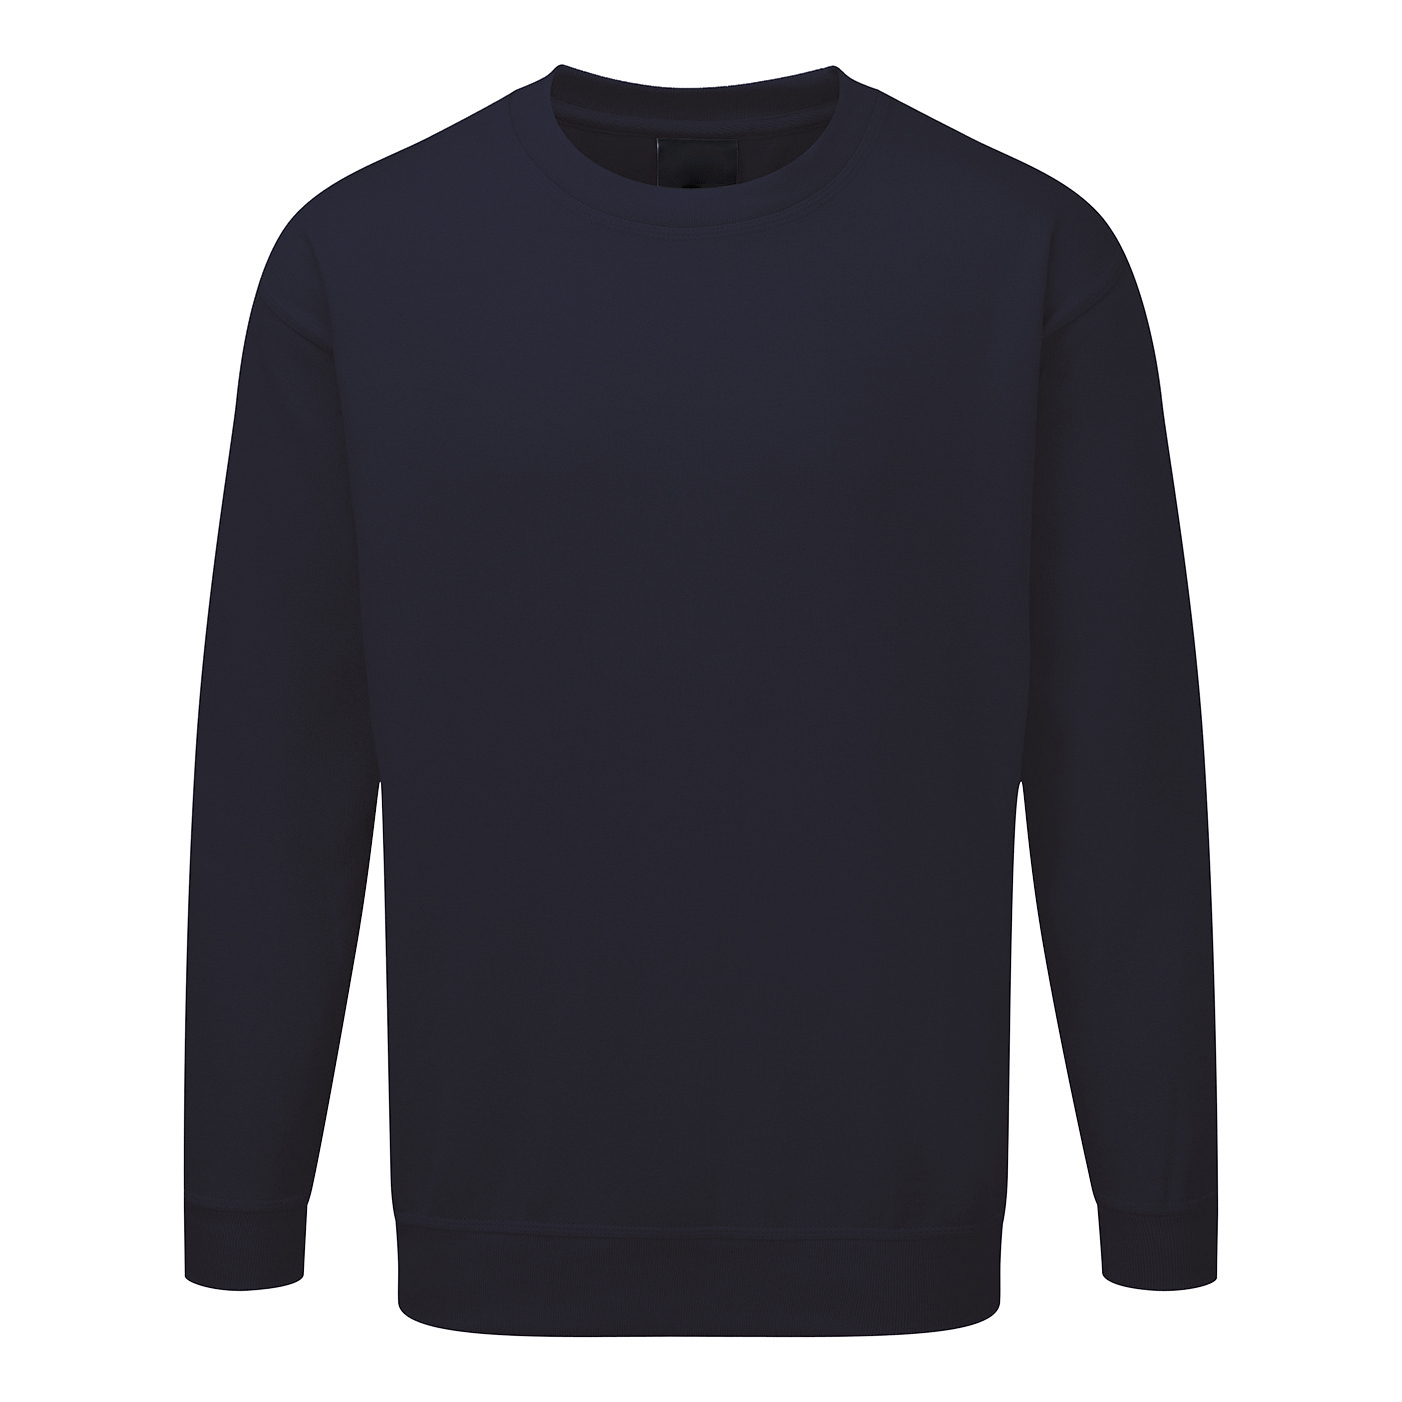 Sweatshirts / Jumpers / Hoodies Click Workwear Sweatshirt Polycotton 300gsm Medium Navy Blue Ref CLPCSNM *1-3 Days Lead Time*